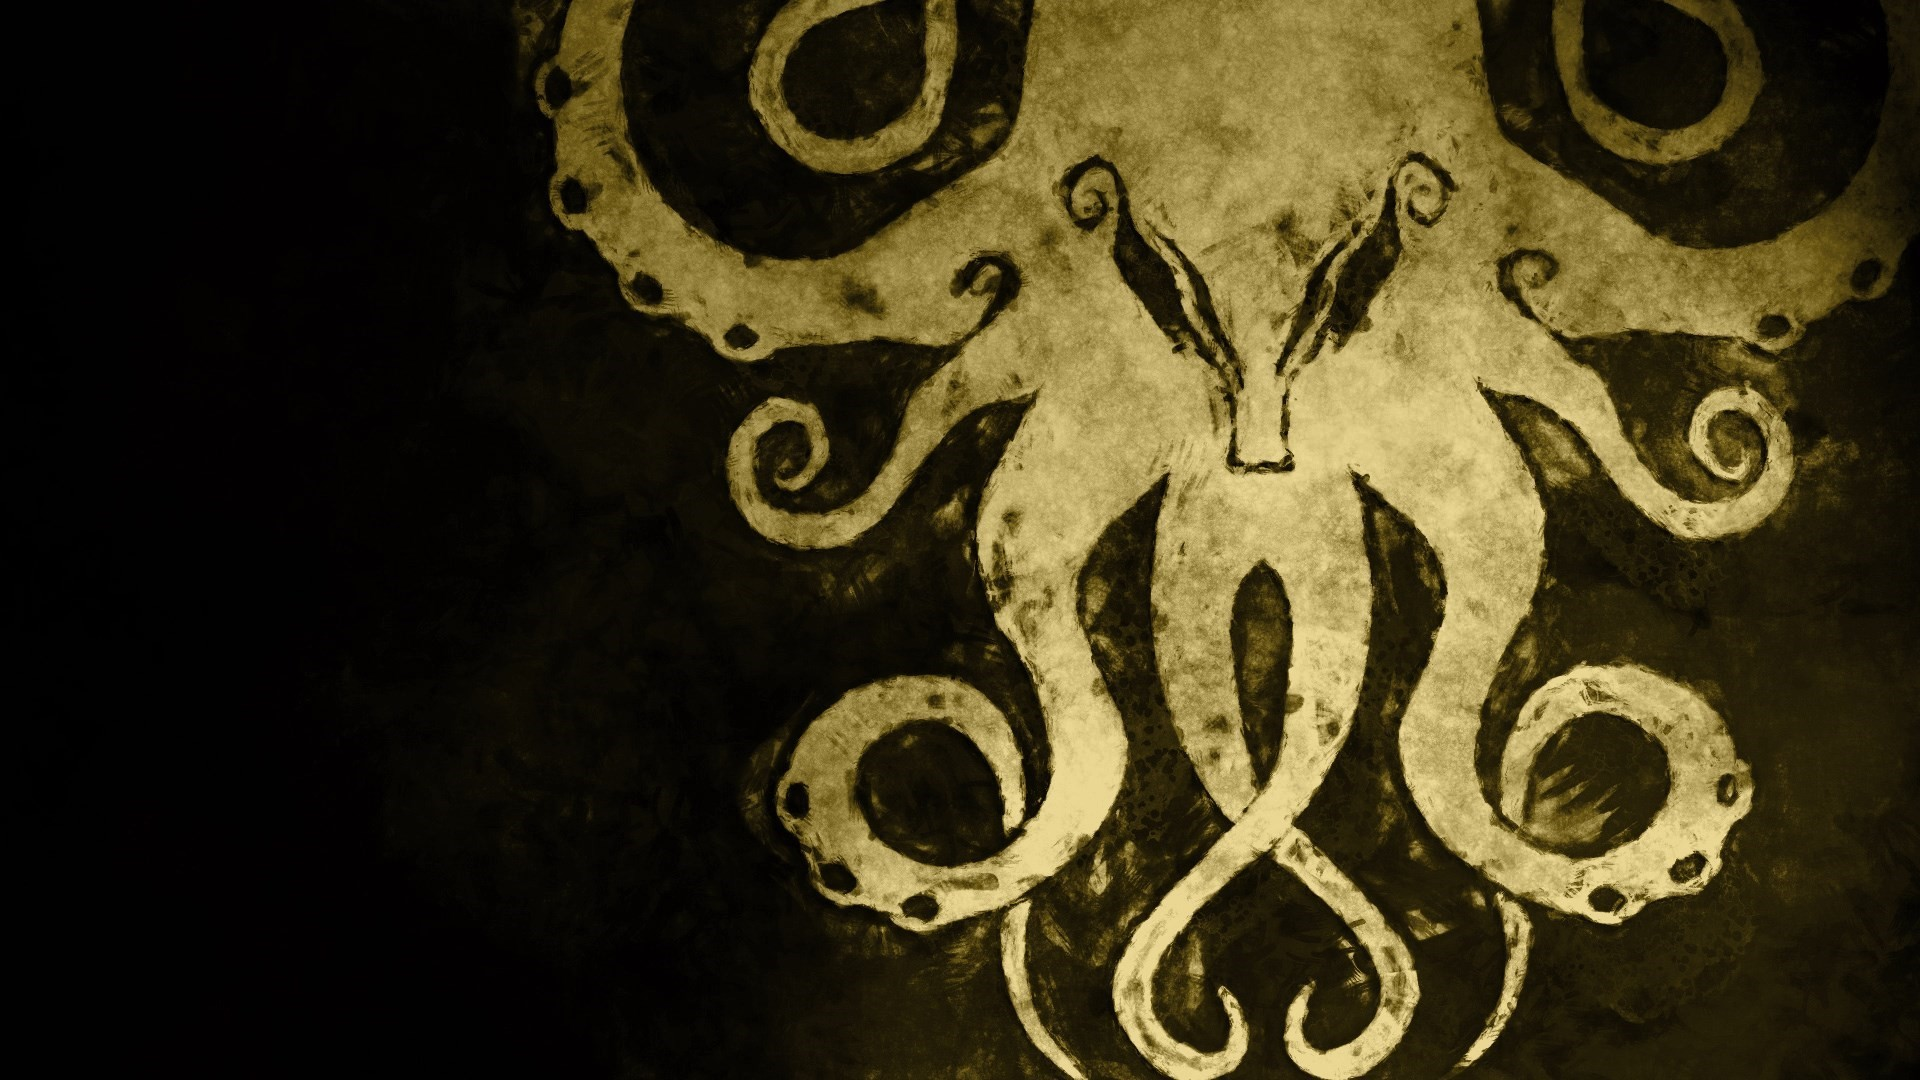 Res: 1920x1080, Cthulhu Wallpaper